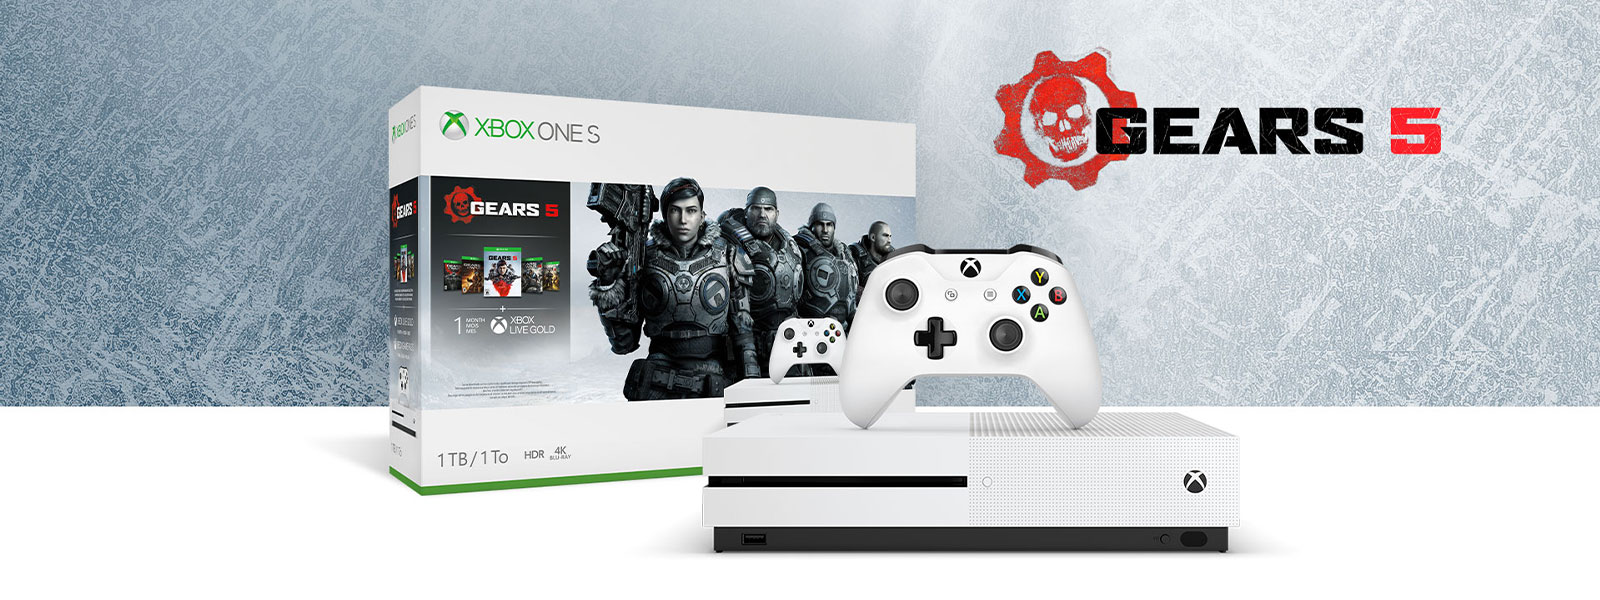 Xbox One S Gears 5 bundle in front of ice texture